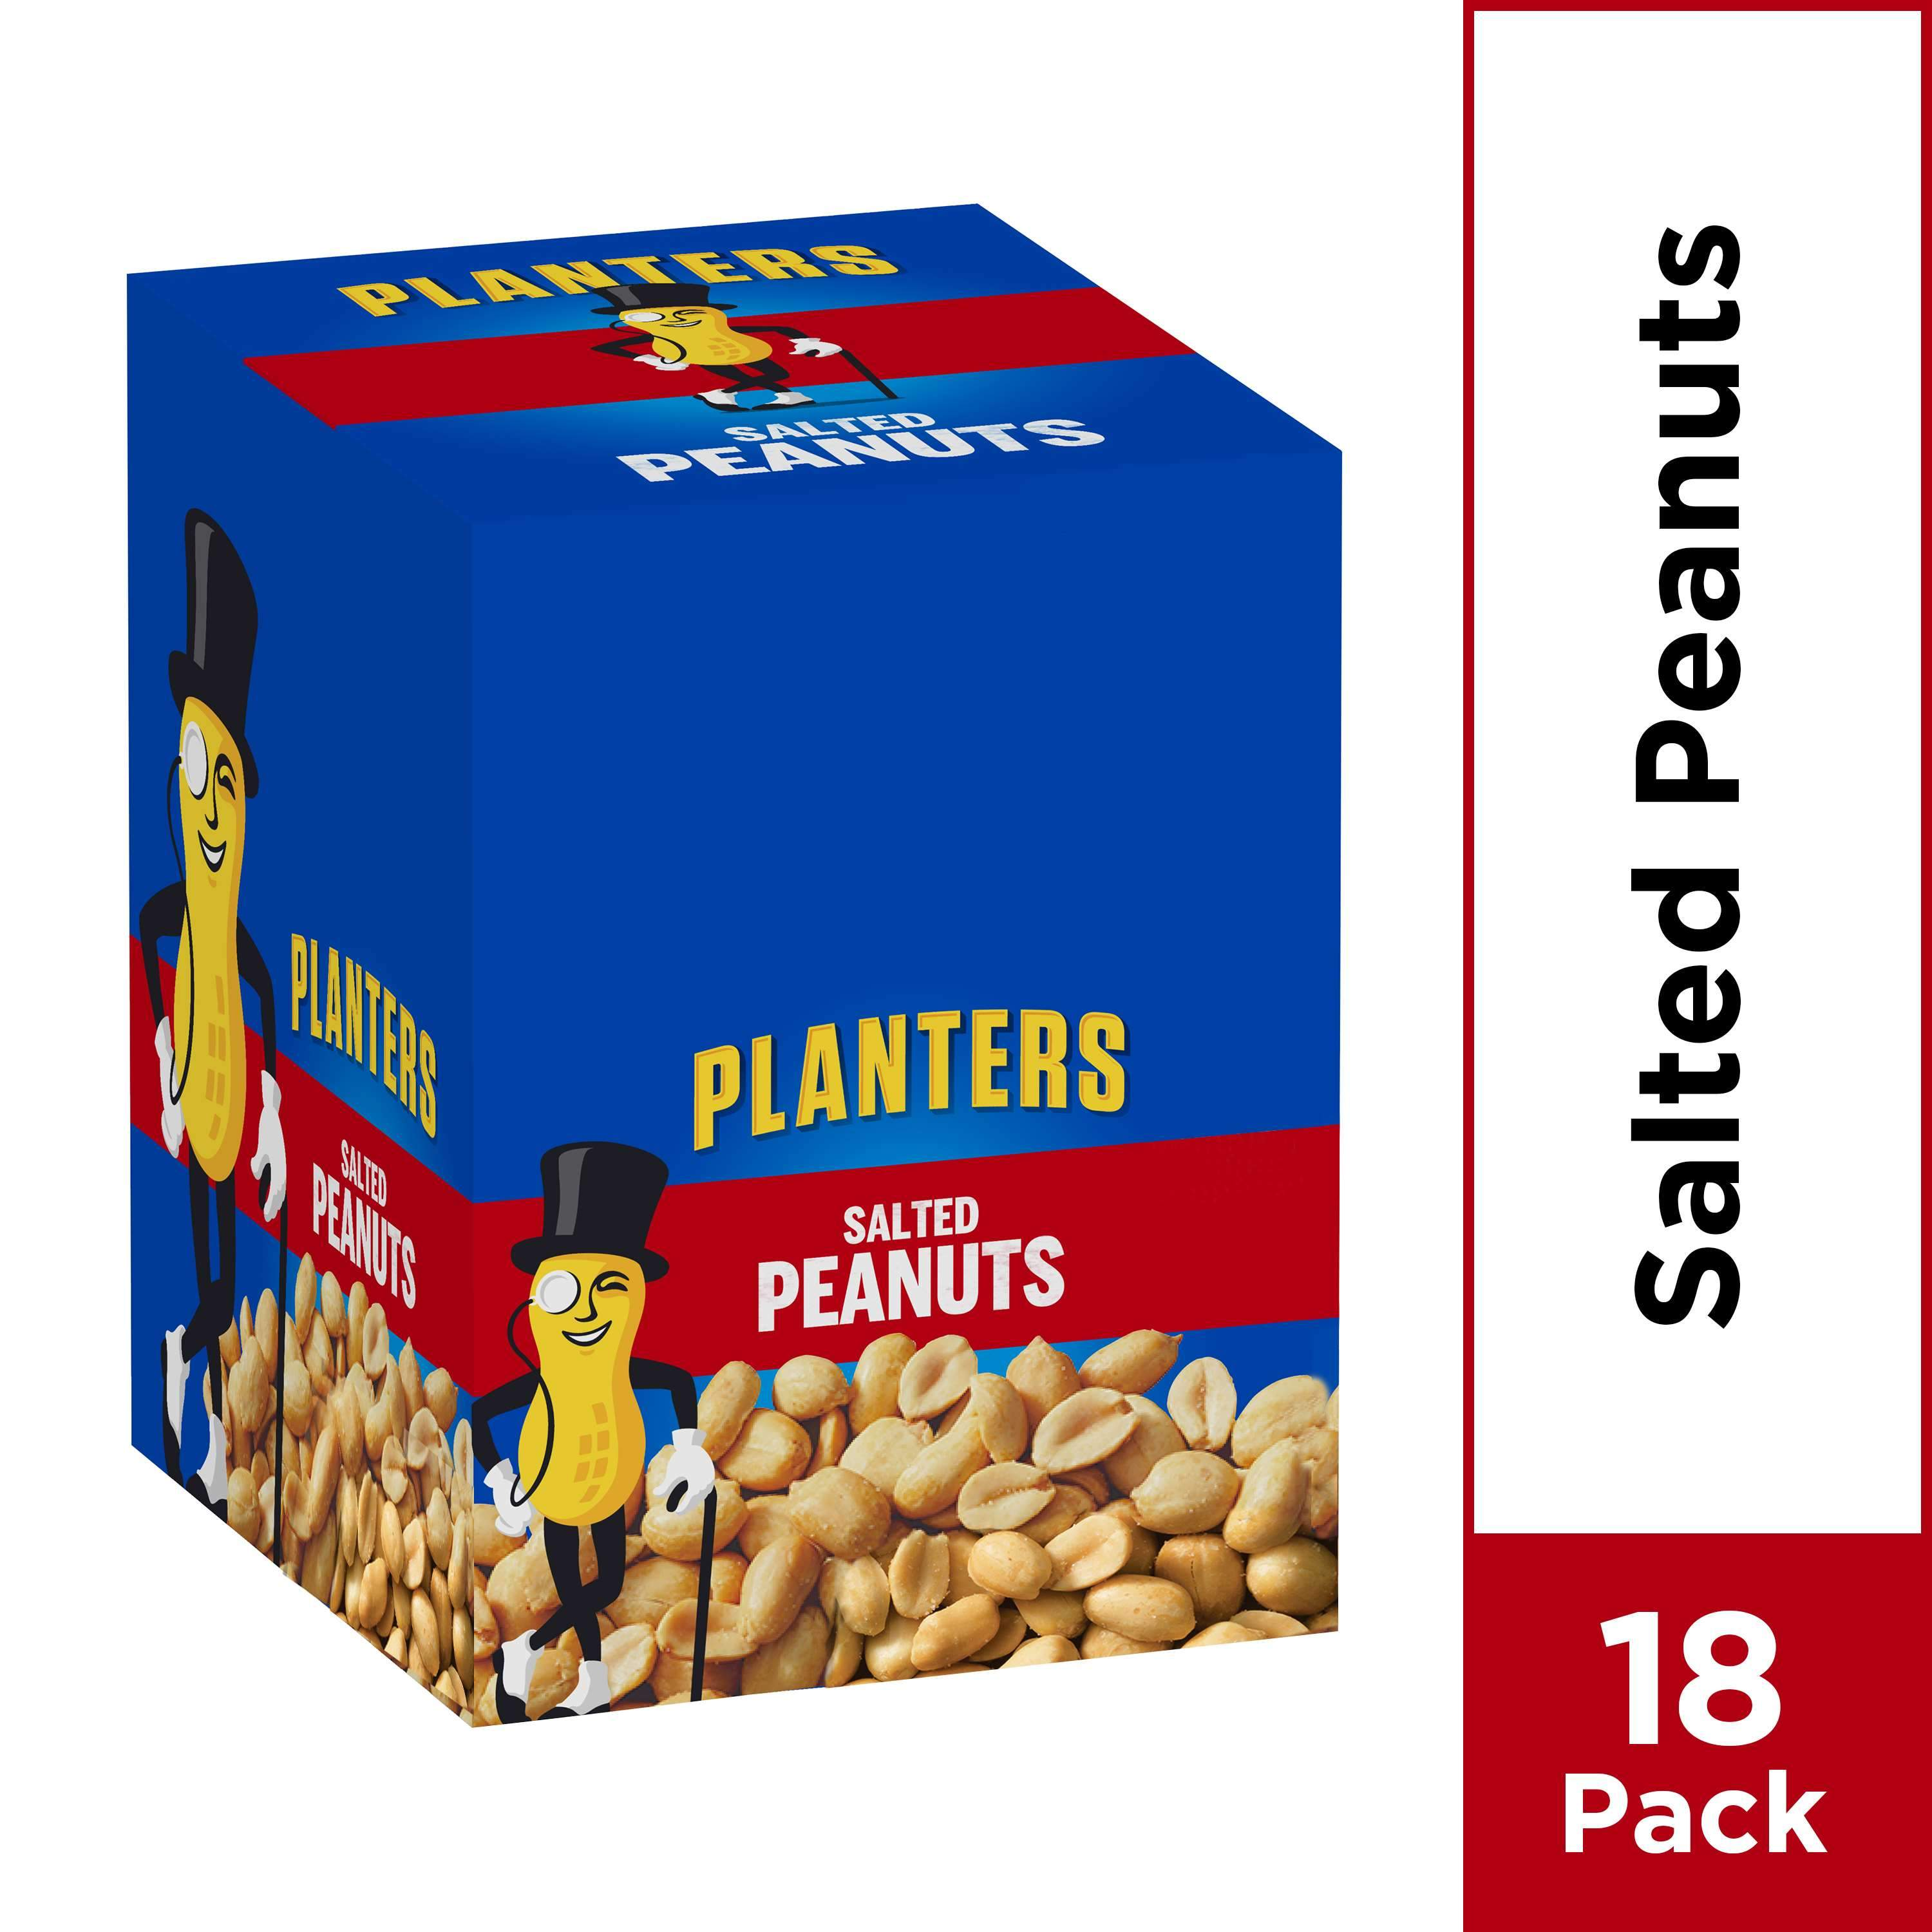 Planters Peanuts Planters Salted 1.75 Oz-18 Count